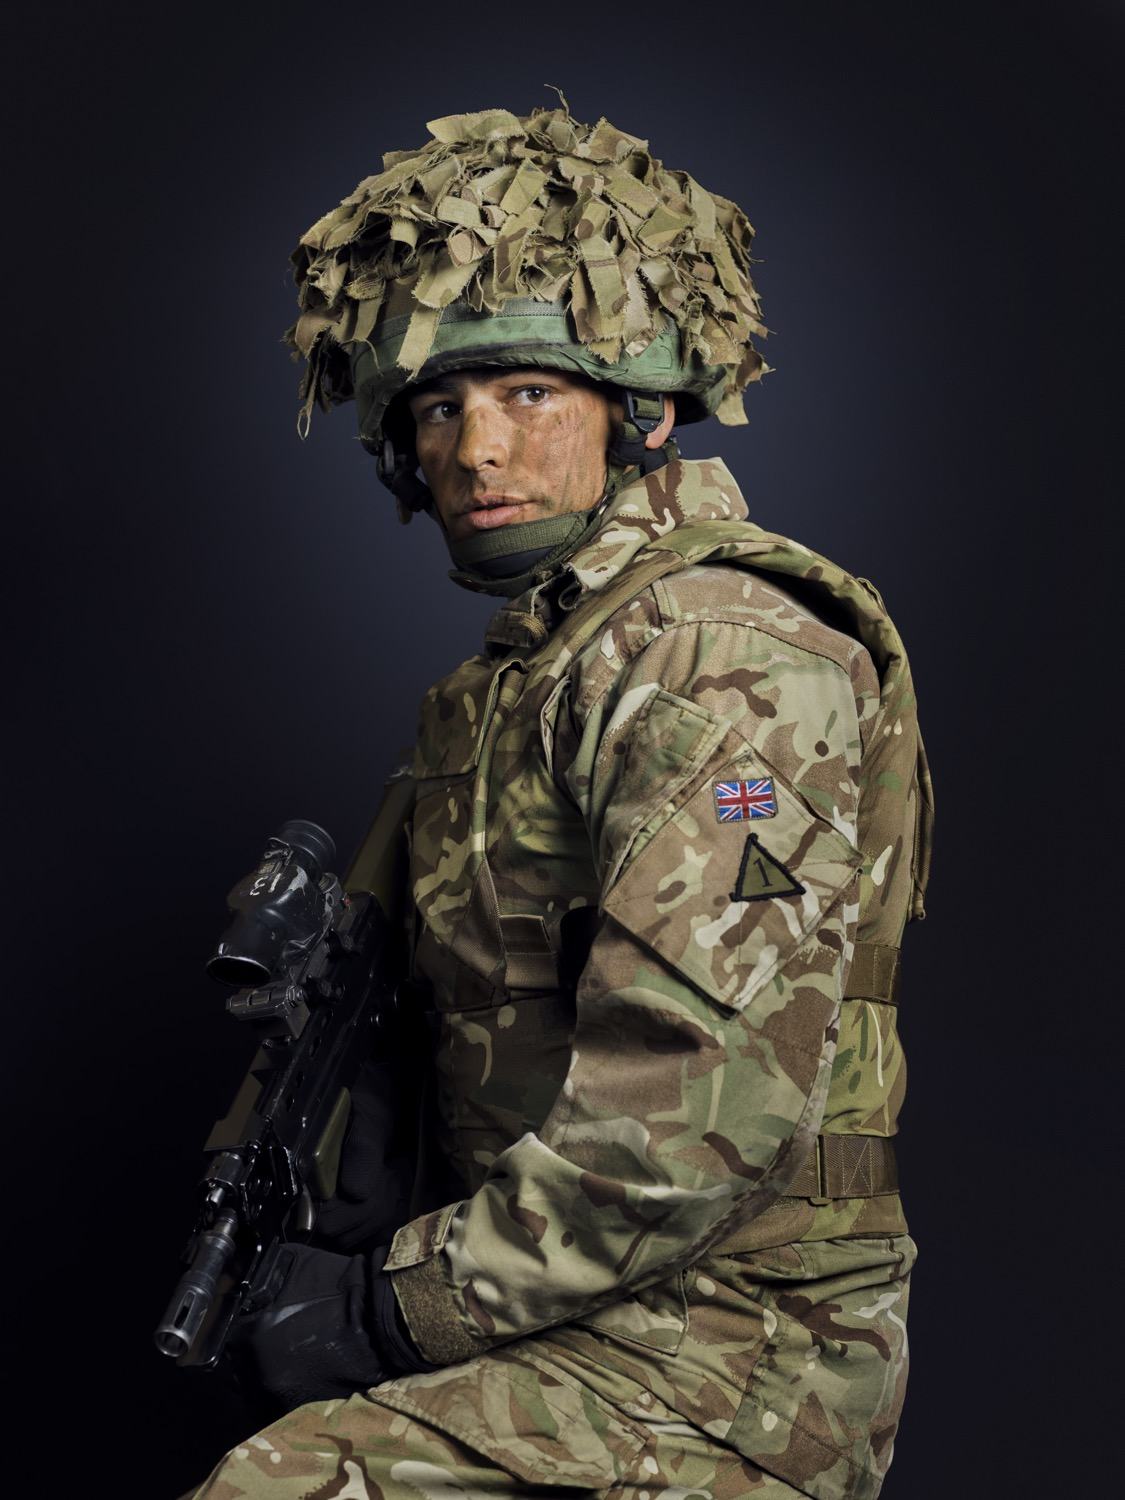 Tpr Millward The Royal Tank Regiment (Rory Lewis London Portrait Photographer)